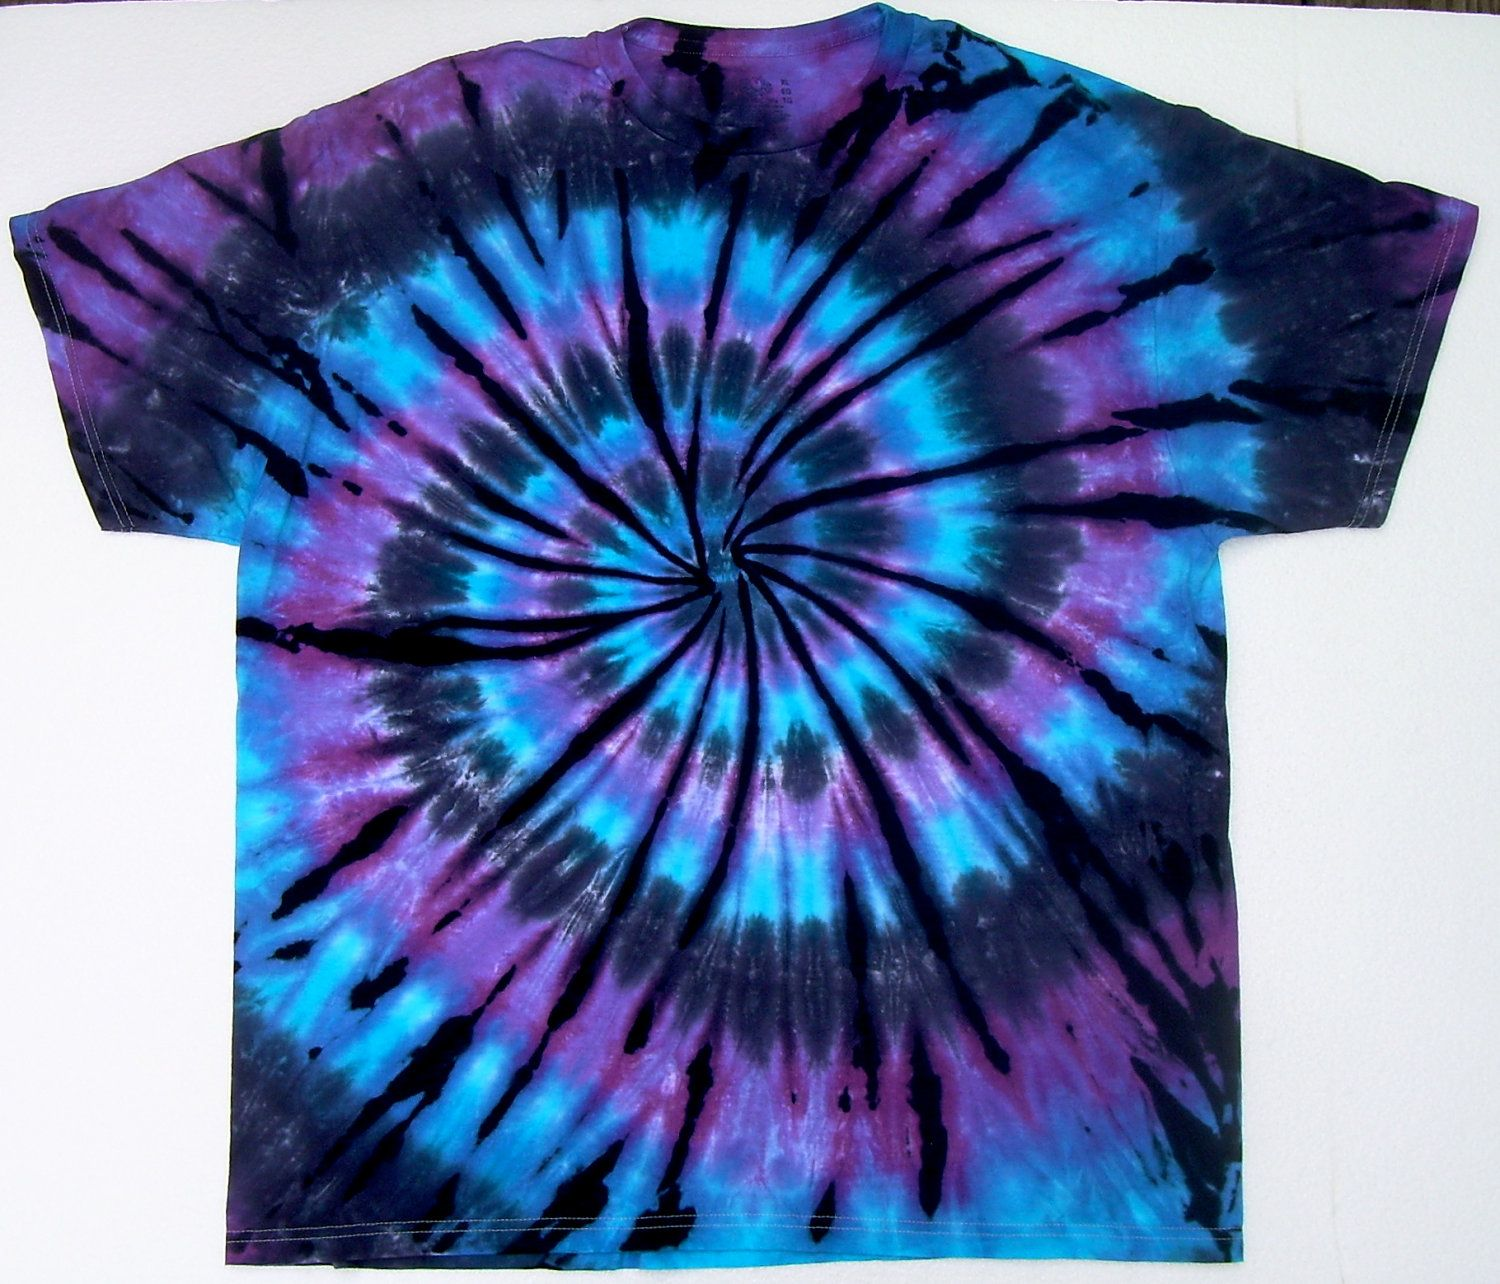 tie dye on pinterest tie dye shirts sharpie tie dye and tie dye. Black Bedroom Furniture Sets. Home Design Ideas